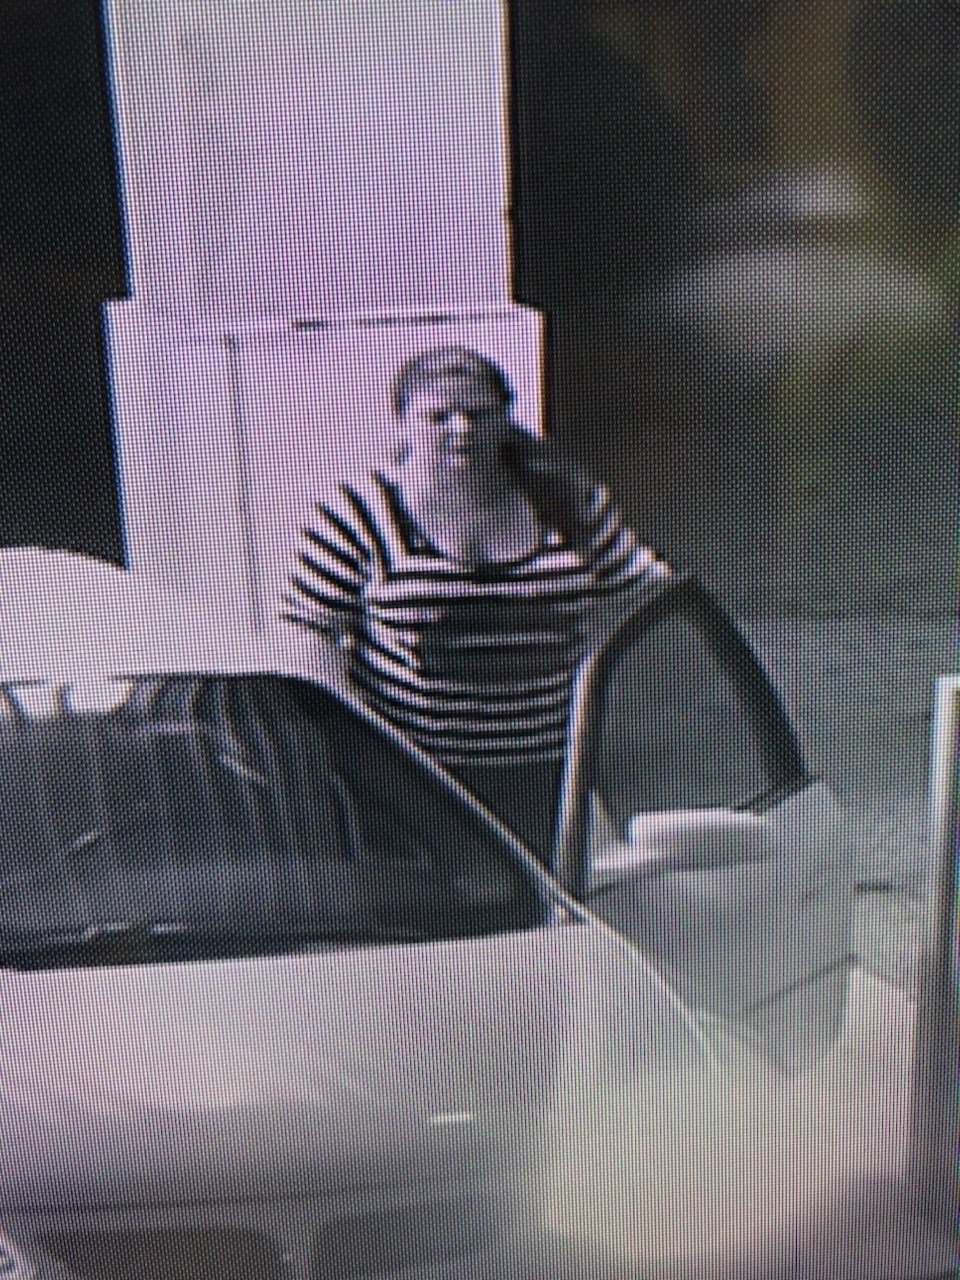 Goodwill theft subject 6/17/18 (source: Columbia County Sheriff's Office)